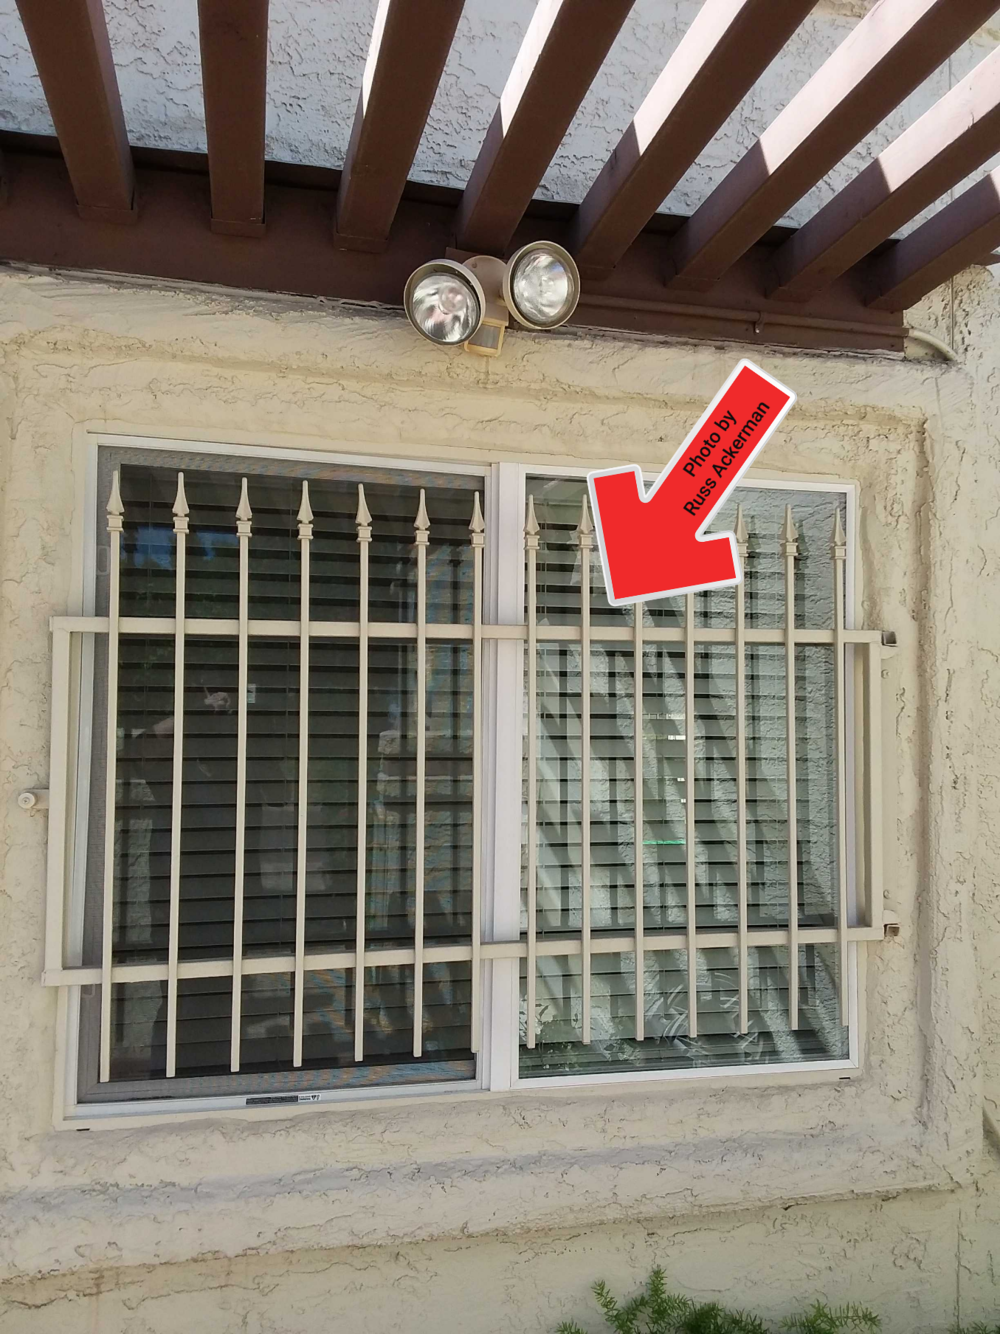 Release mechanisms at window security bars are notorious for failing, restricting proper egress. They should be checked monthly for proper operation.